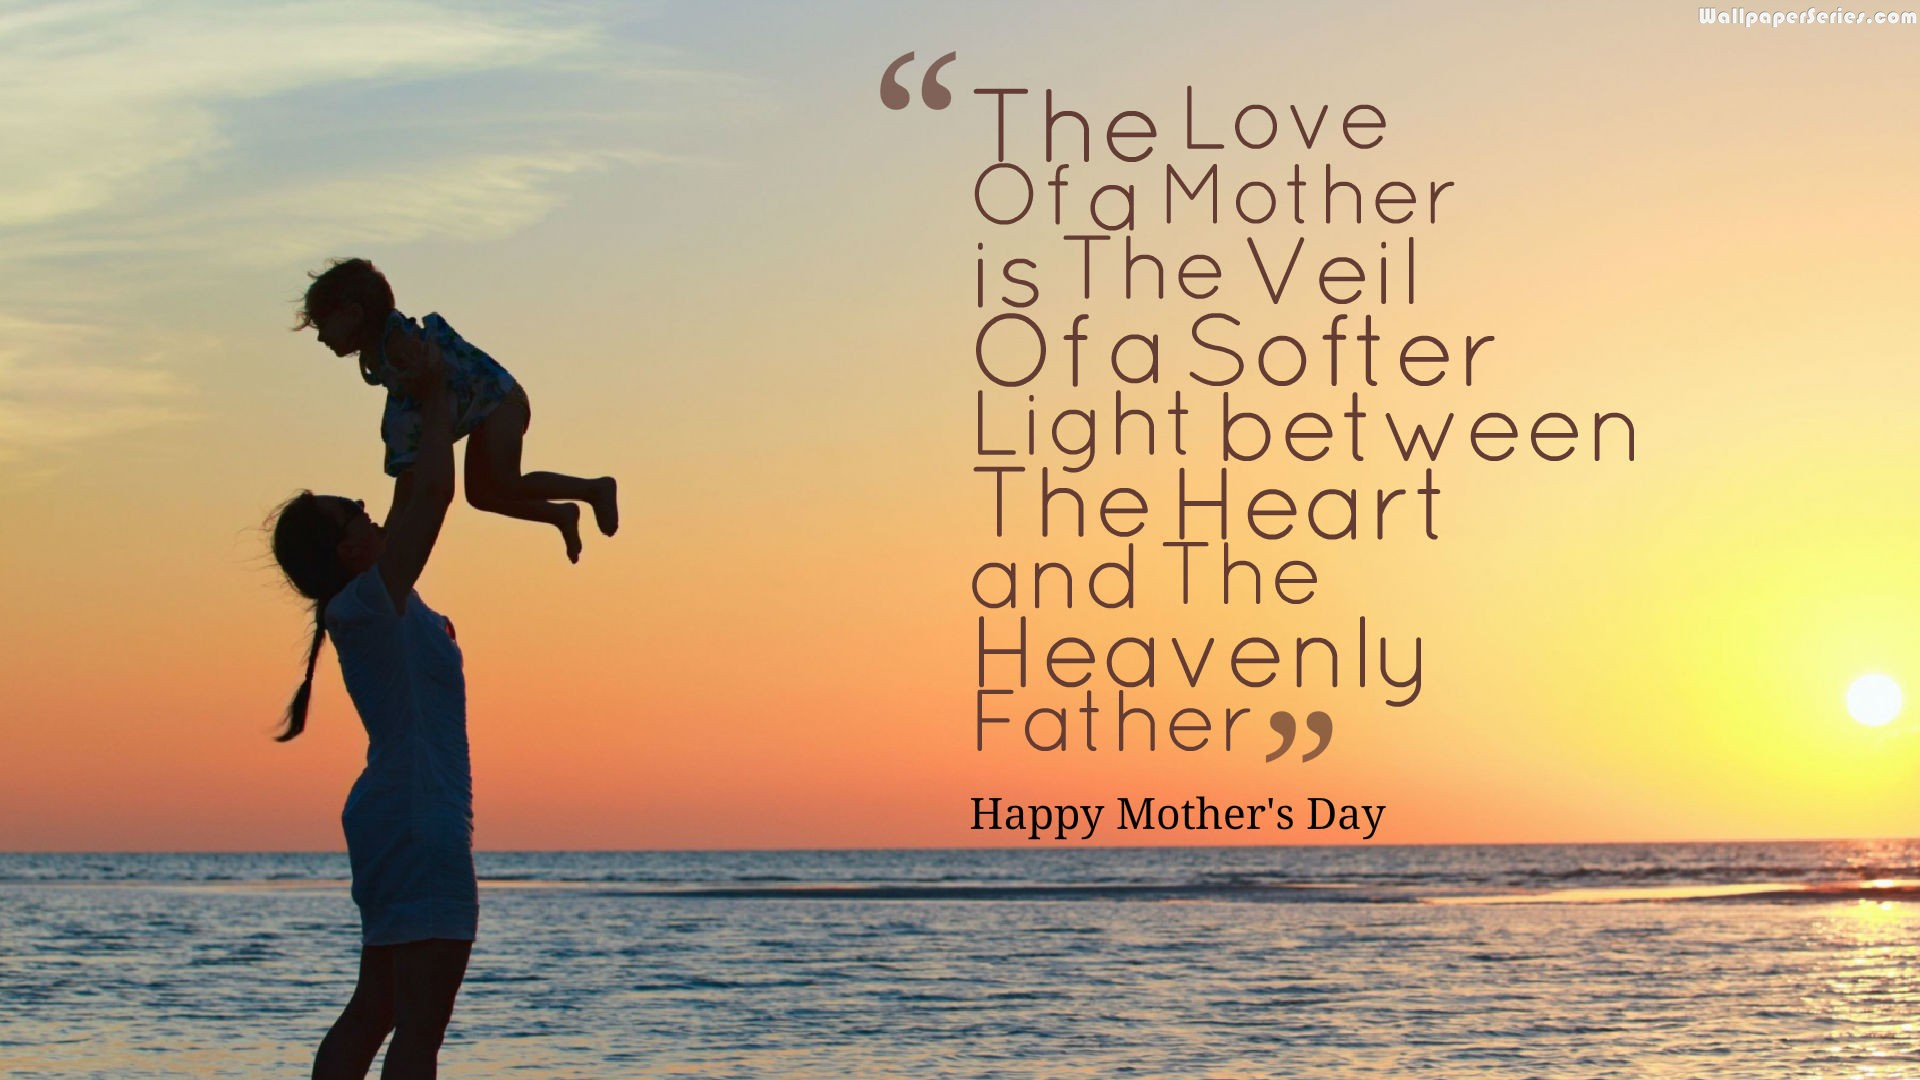 Heavenly Mothers Day Quotes Wallpaper - Mothers Day Quotes Hd - HD Wallpaper